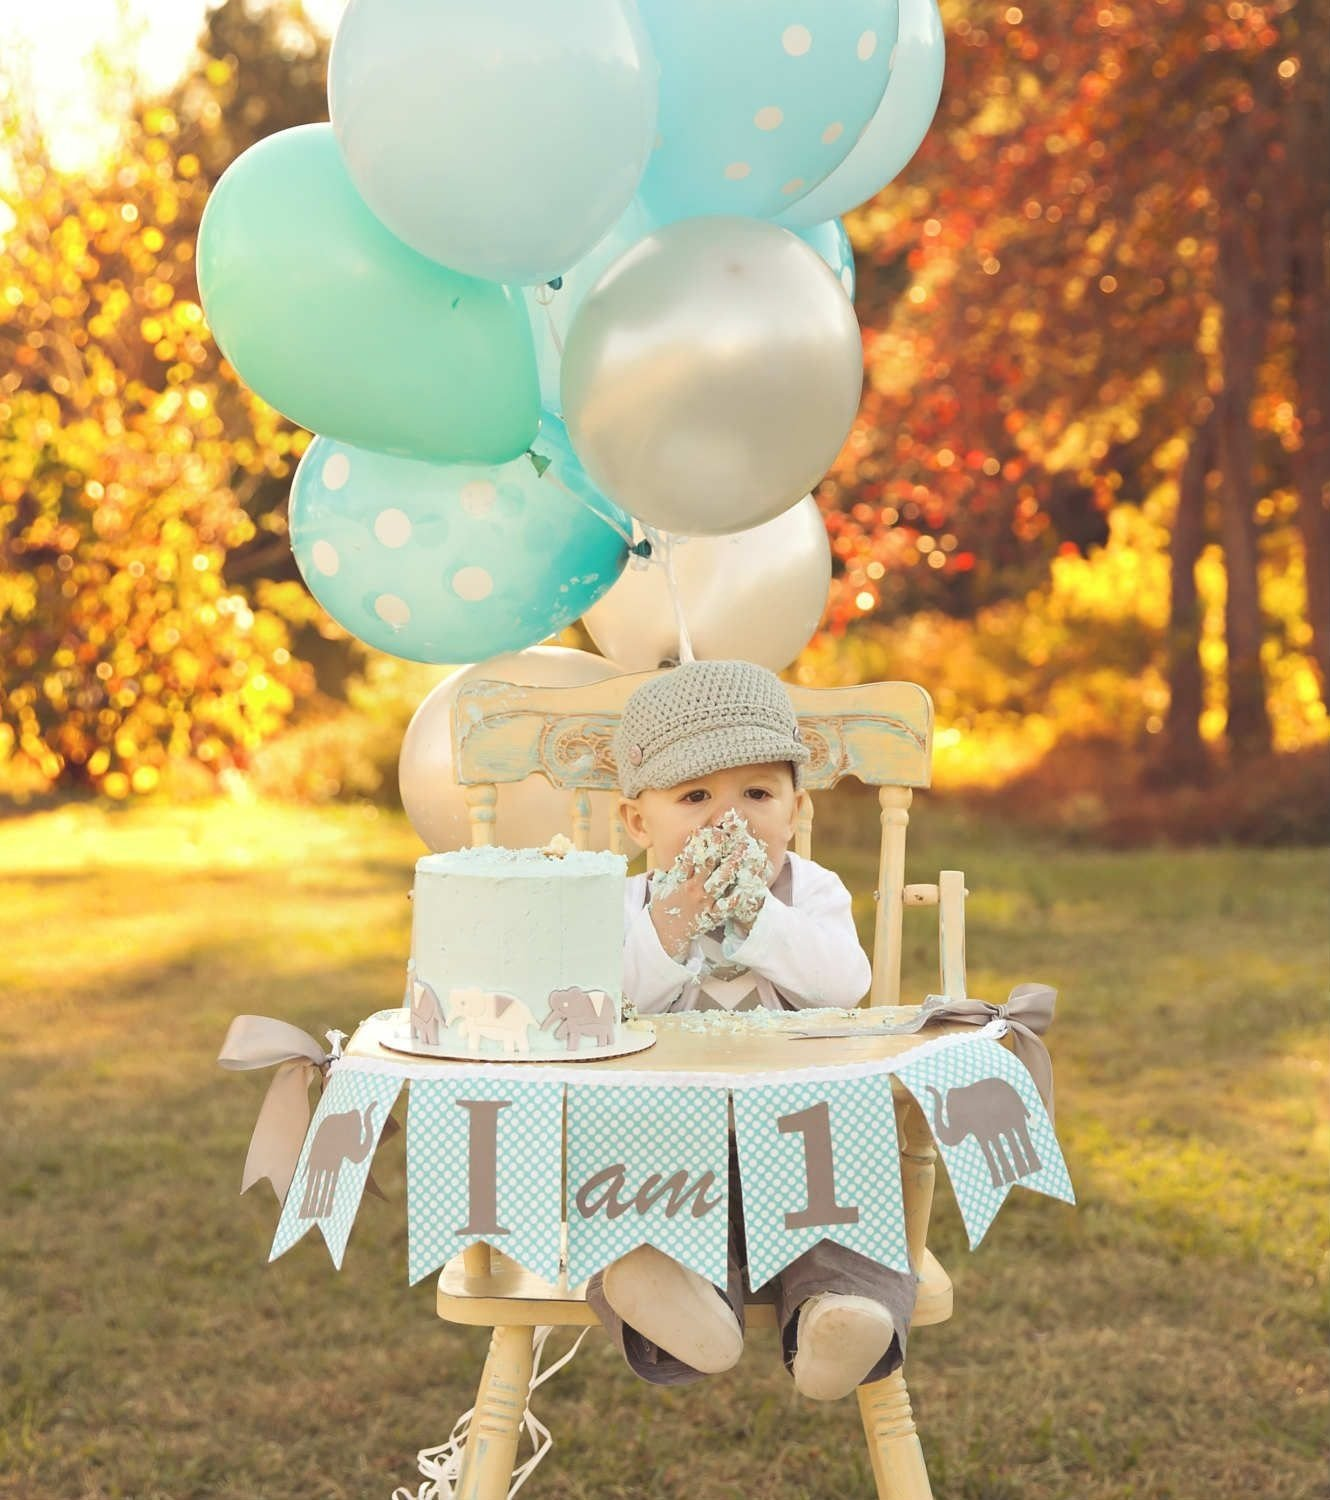 10 Stunning 1St Birthday Party Ideas For Boys 10 1st birthday party ideas for boys part 2 birthday decorations 25 2020